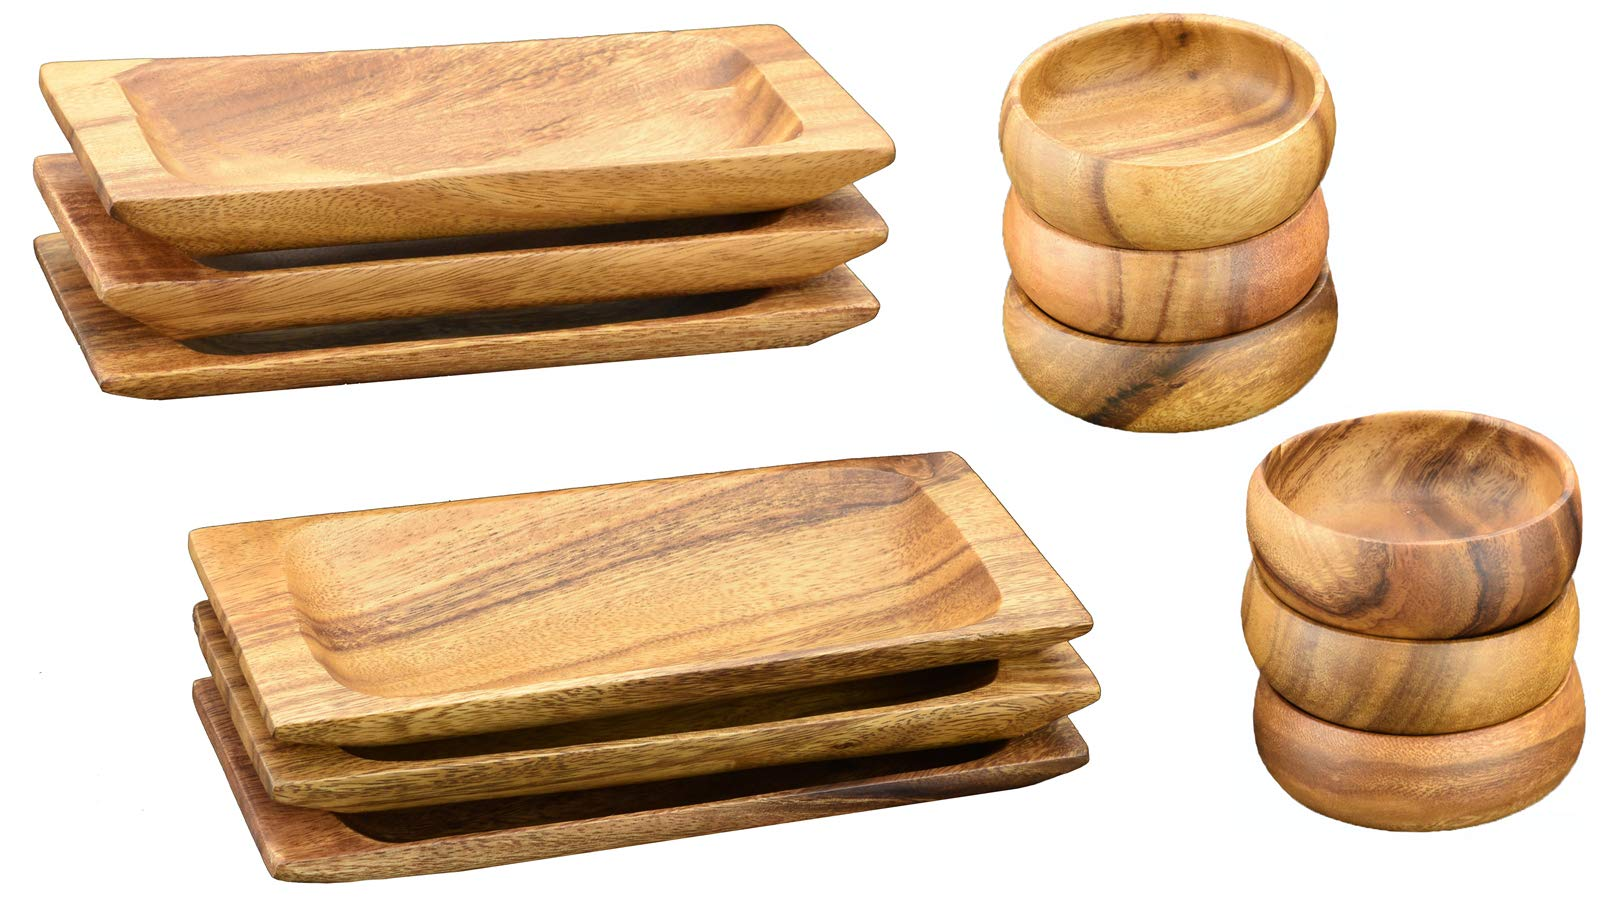 Acaciaware Acacia Wood Appetizer Trays, Sushi and Cheese Plates (9-inch by 4-inch) and Round Dip and Nut Bowls (4-inch by1.5-inch), Set of 6 (12 pcs total)